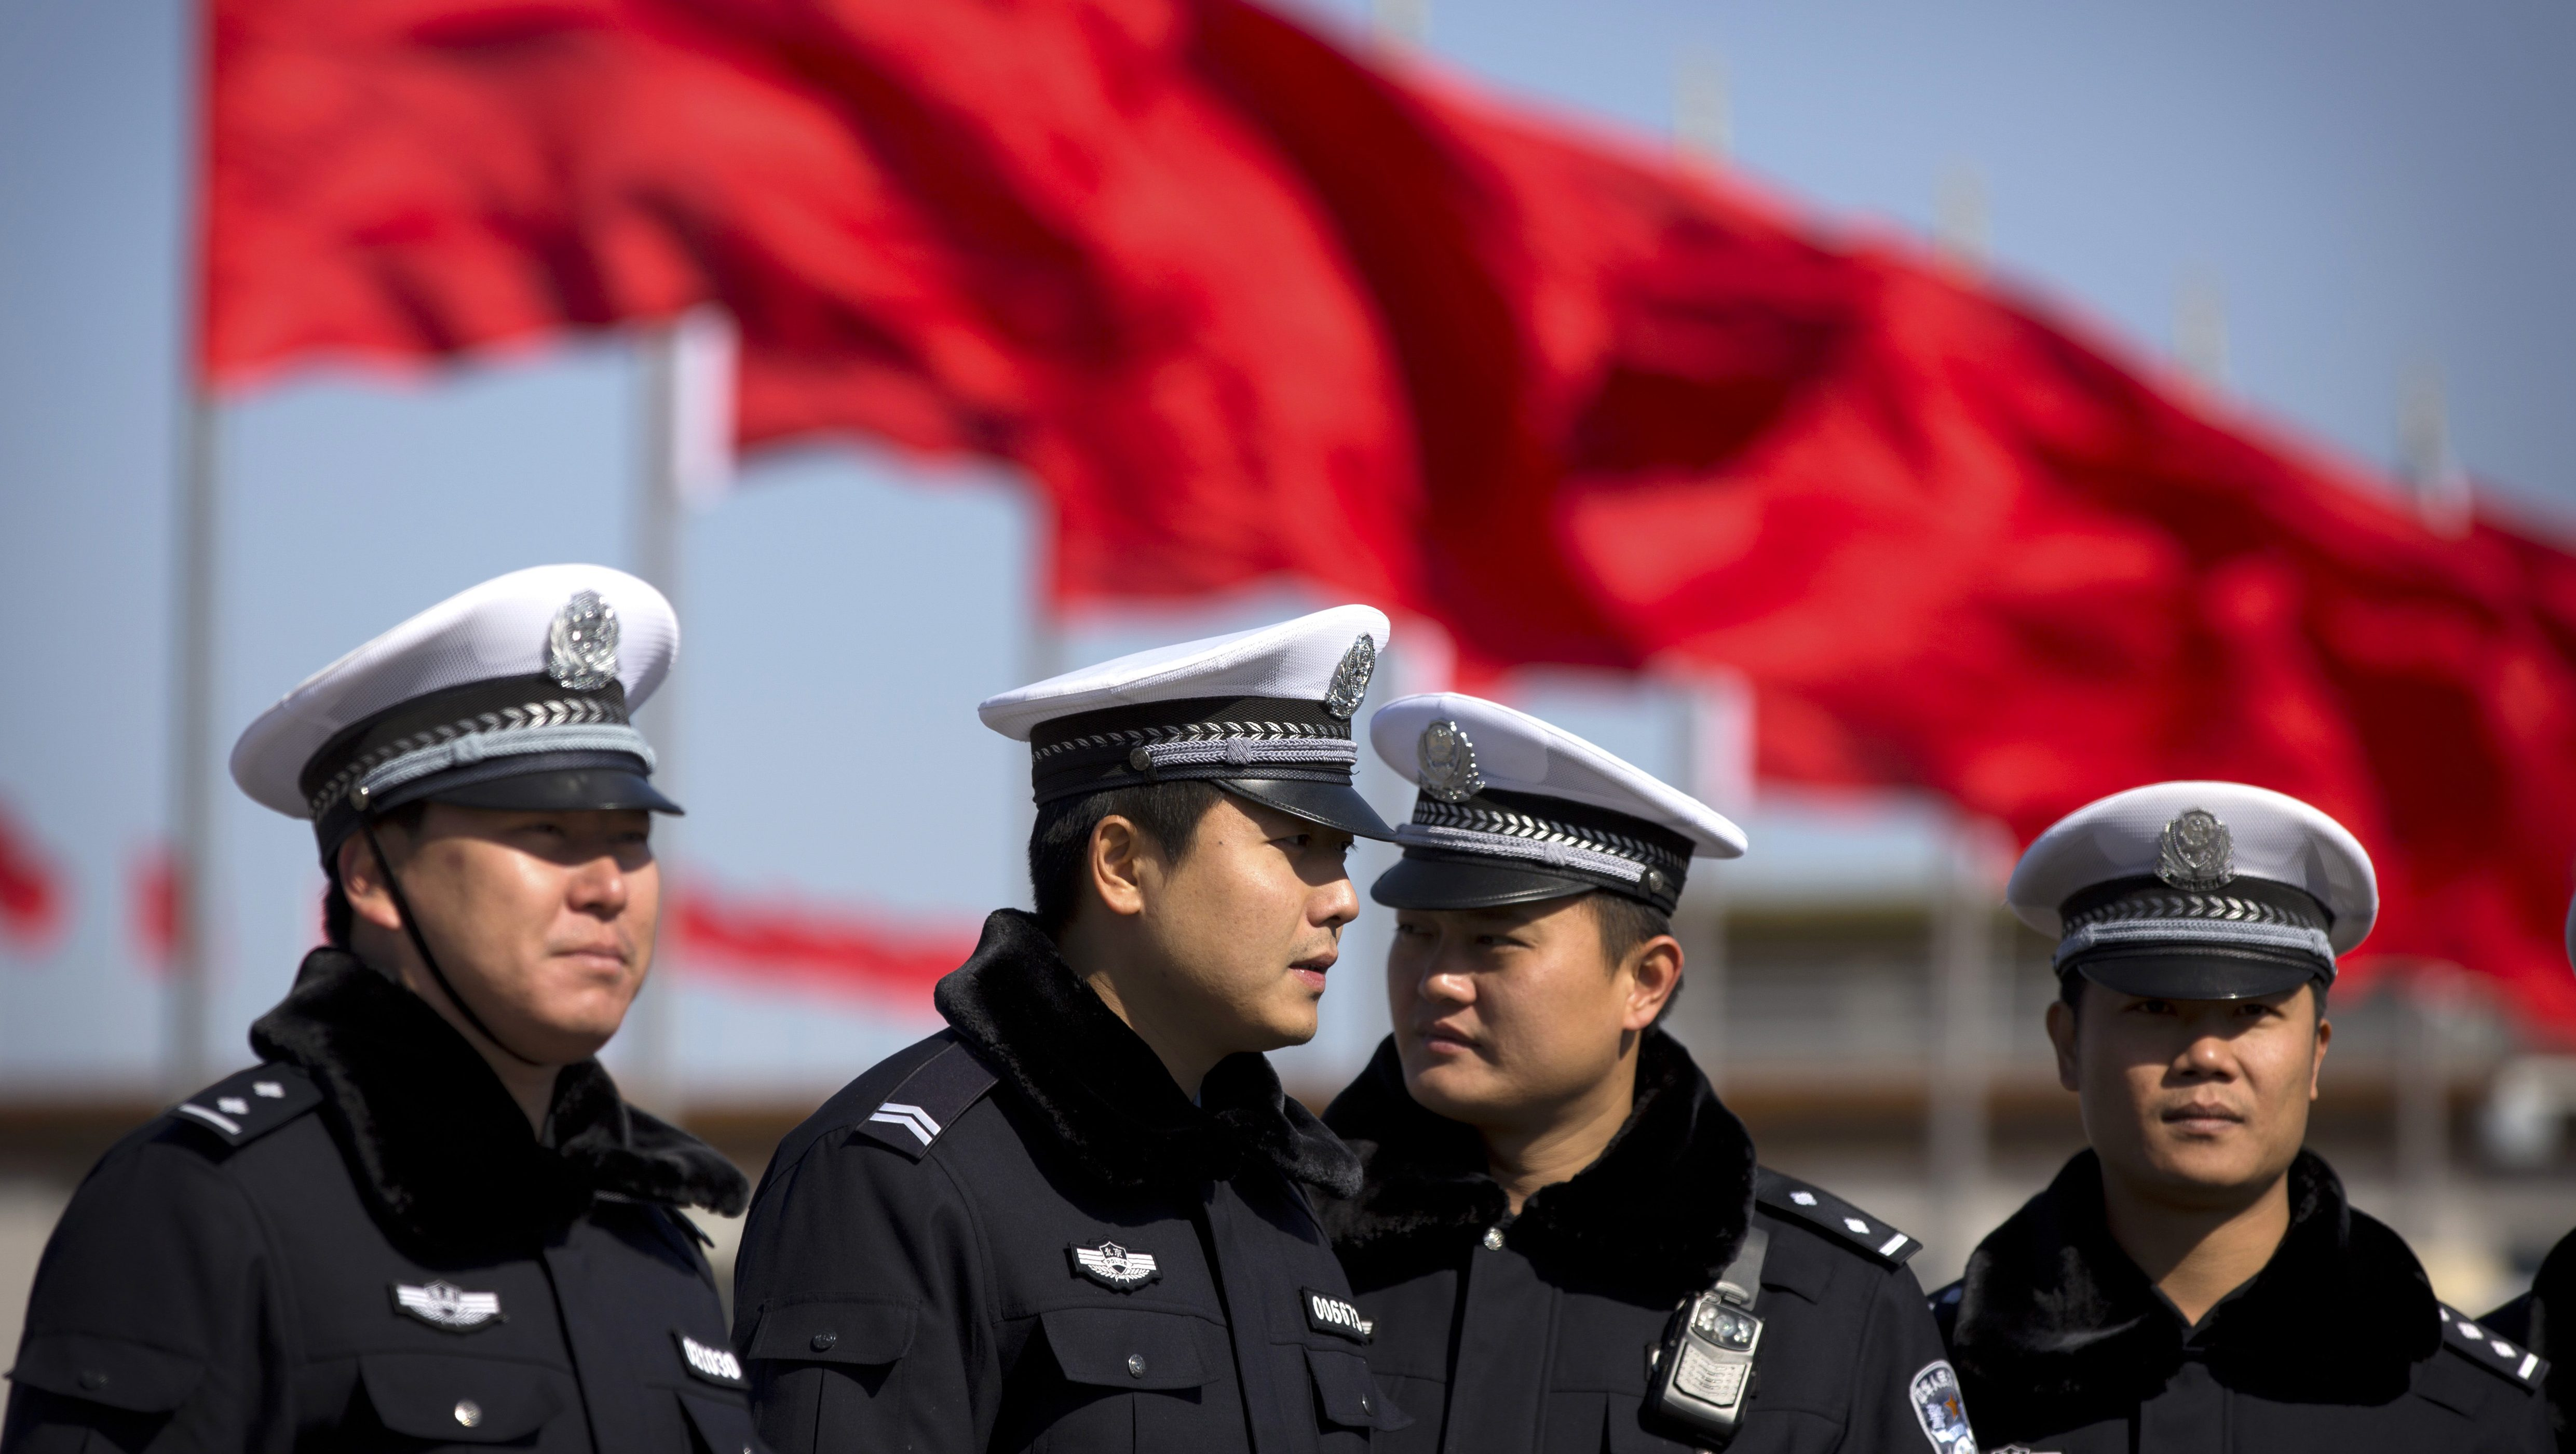 Chinese policemen gather on Tiananmen Square before delegates arrive for the opening session of the Chinese People's Political Consultative Conference in Beijing's Great Hall of the People, Tuesday, March 3, 2015. The more than 2,000 members of China's top legislative advisory body convened their annual meeting Tuesday, kicking off a political high season that will continue with the opening of the national congress later in the week. (AP Photo/Mark Schiefelbein)